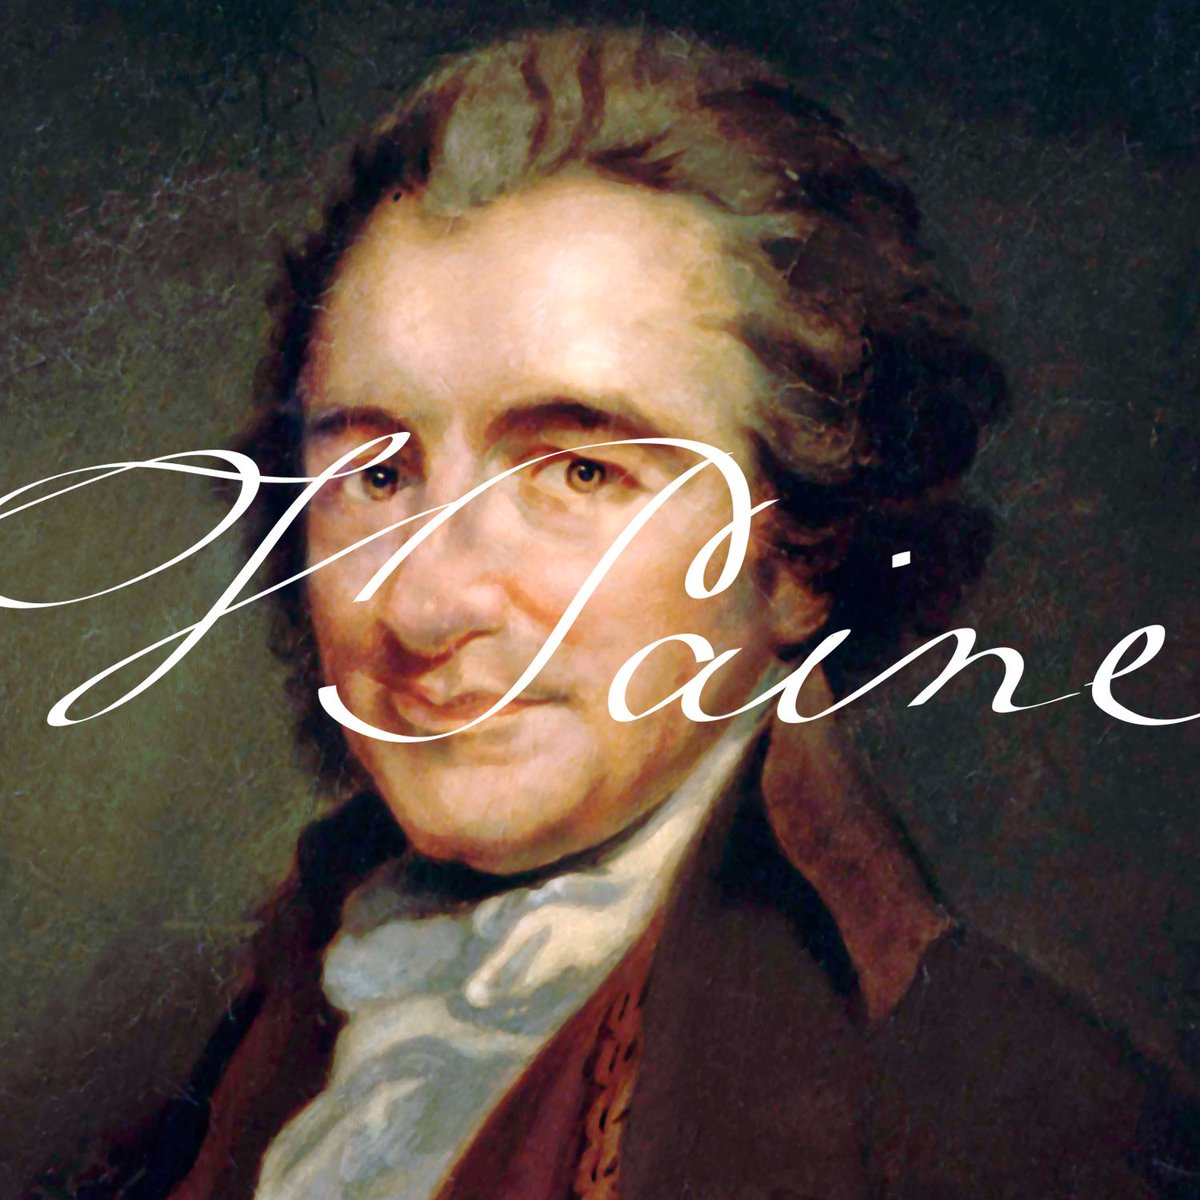 """#OTD January 15, 1776 – Thomas Paine publishes his timeless pamphlet entitled """"Common Sense"""".  Our Thomas Paine signature sticker is 1 of 9 stickers in our Founding Signers Signature Sticker collection! Shop now at   #commonsense #thomaspaine #amrev #revwar"""